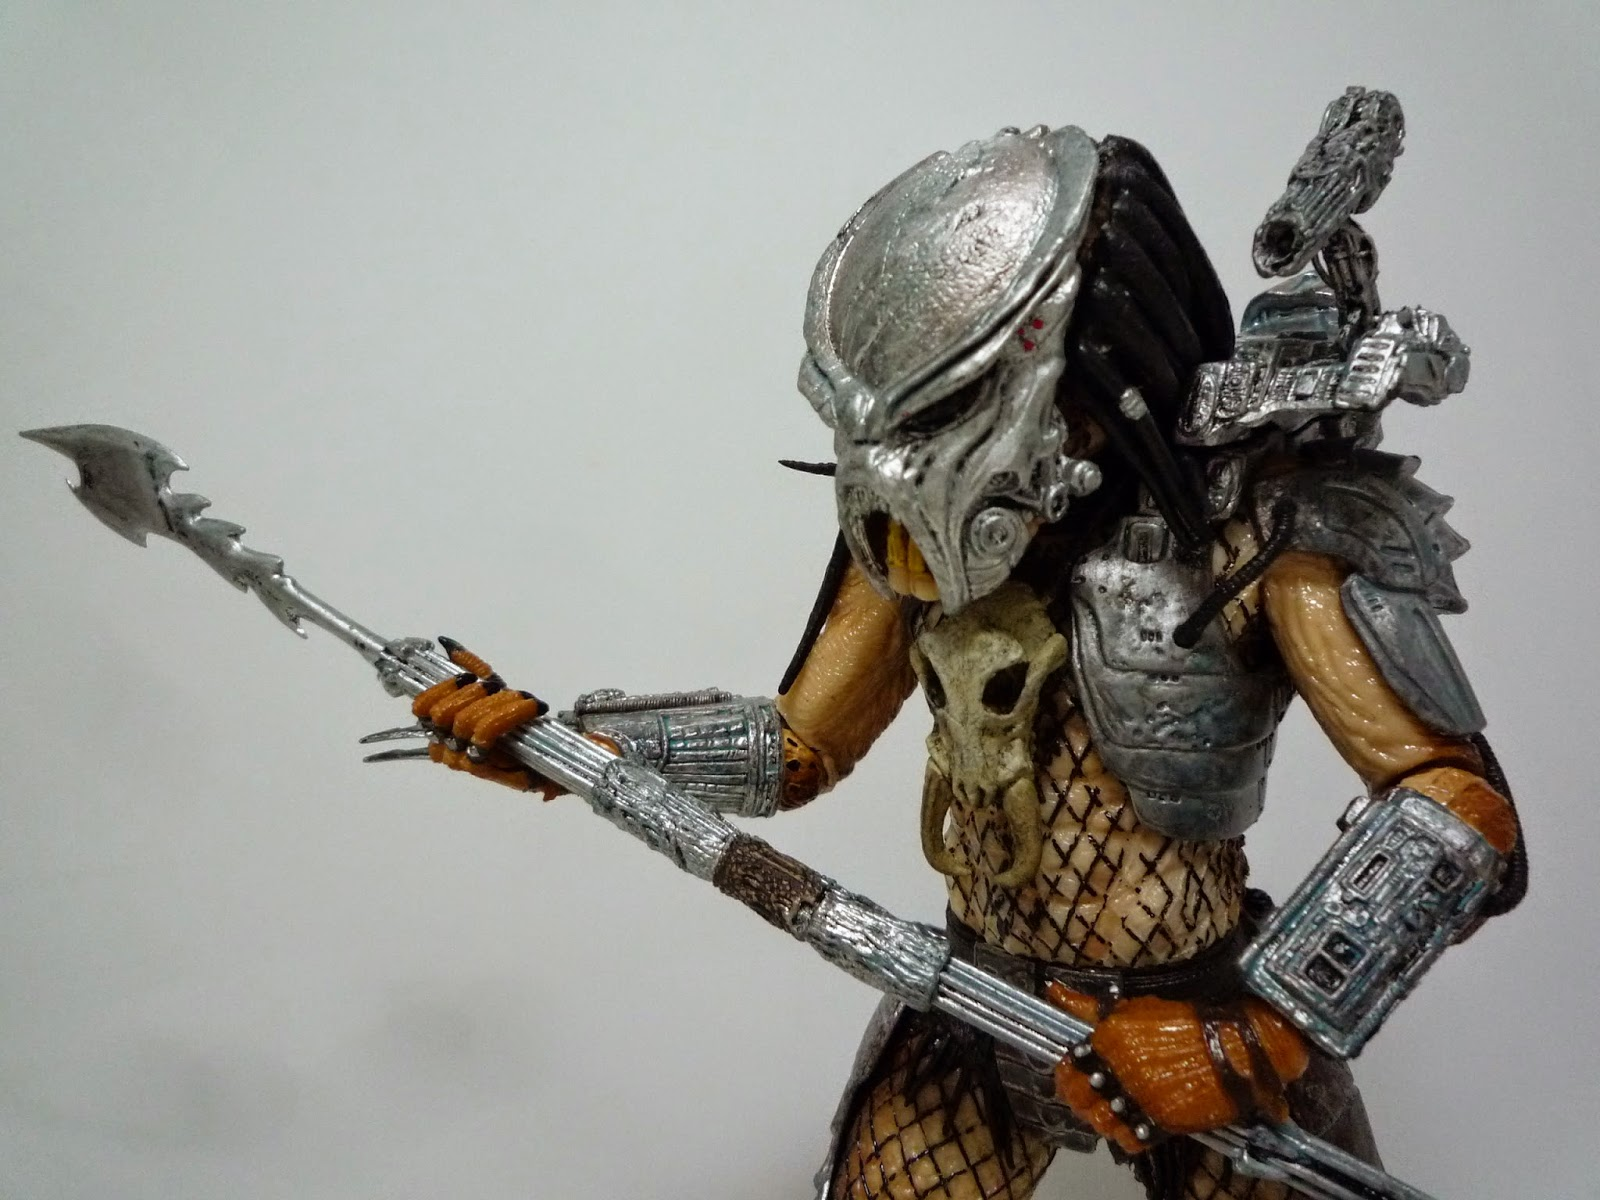 Back To Search Resultstoys & Hobbies Romantic 18cm Neca Aliens Action Figure Ricco Frost Private Figure Toy With Weapon Helmet Alien Vs Predator Avp Model Doll Cheap Sales 50%